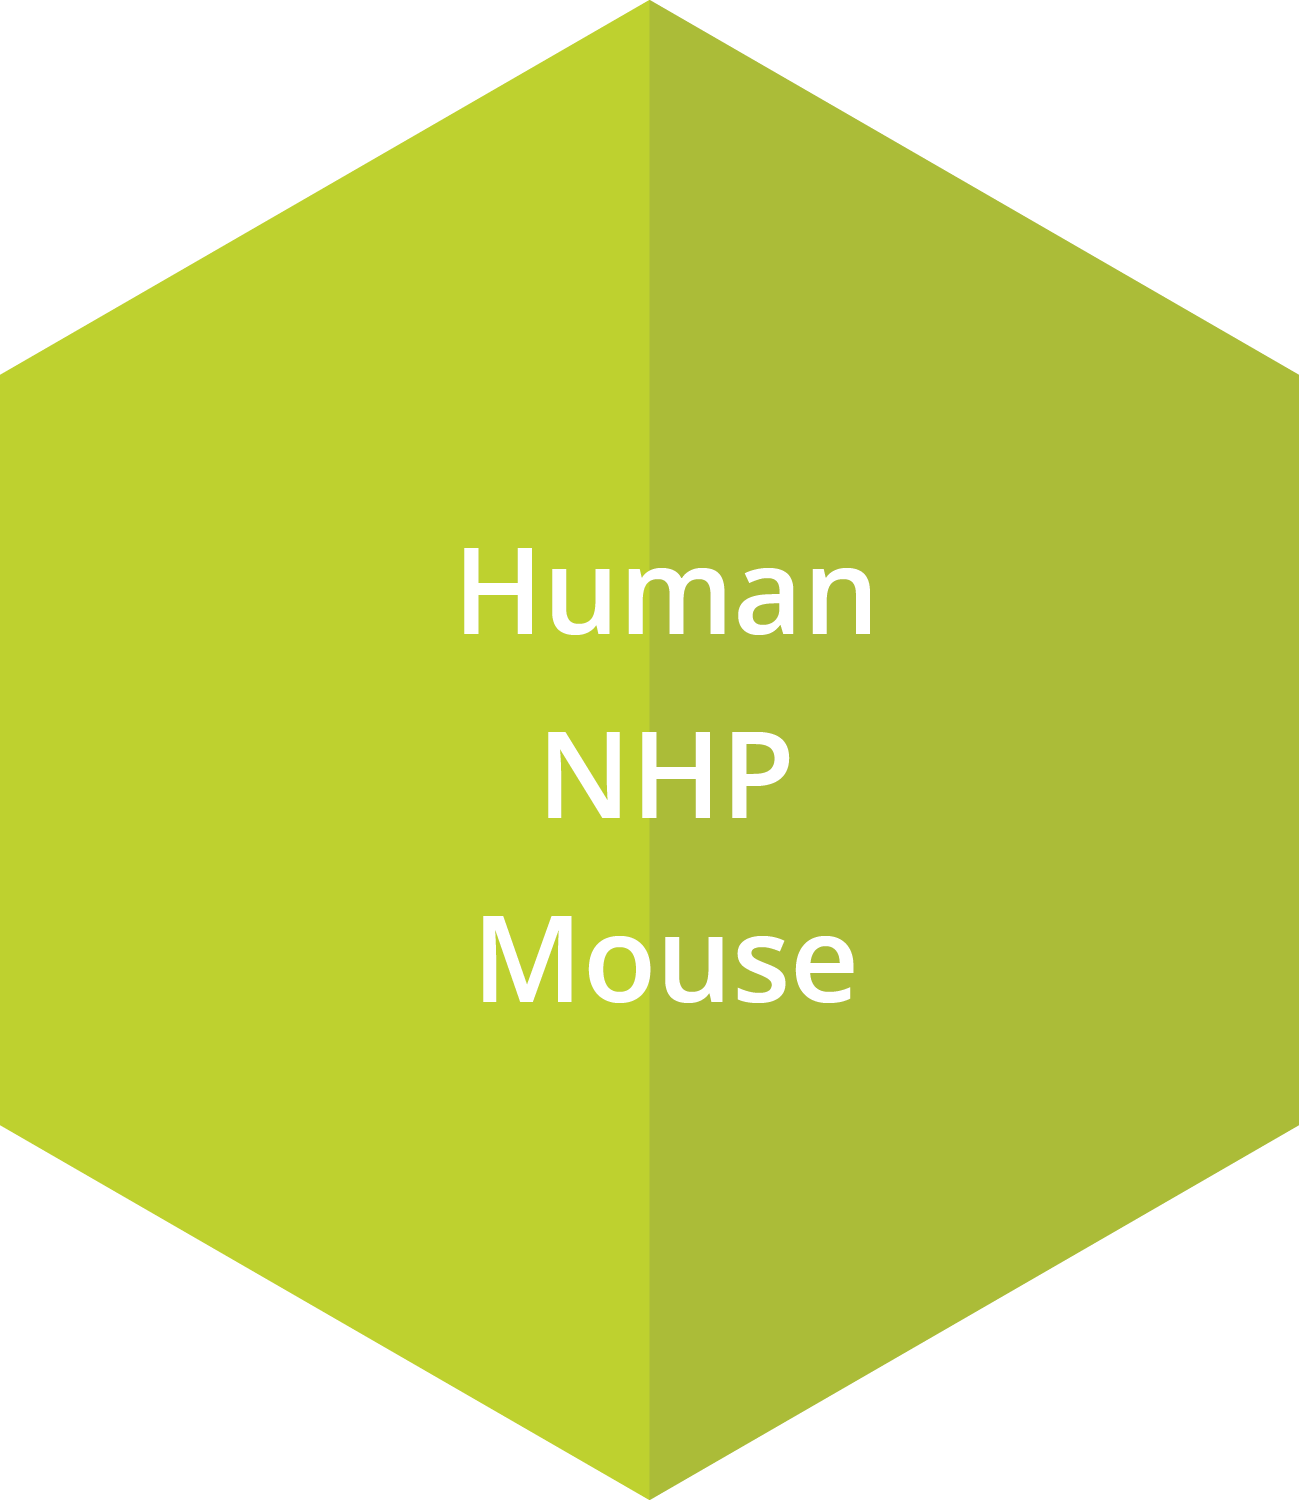 CFU- E progenitors may be cultured from human or mouse bone marrow. Our BFU-E progenitors can be cultured from bone marrow for human, NHP and mouse species.